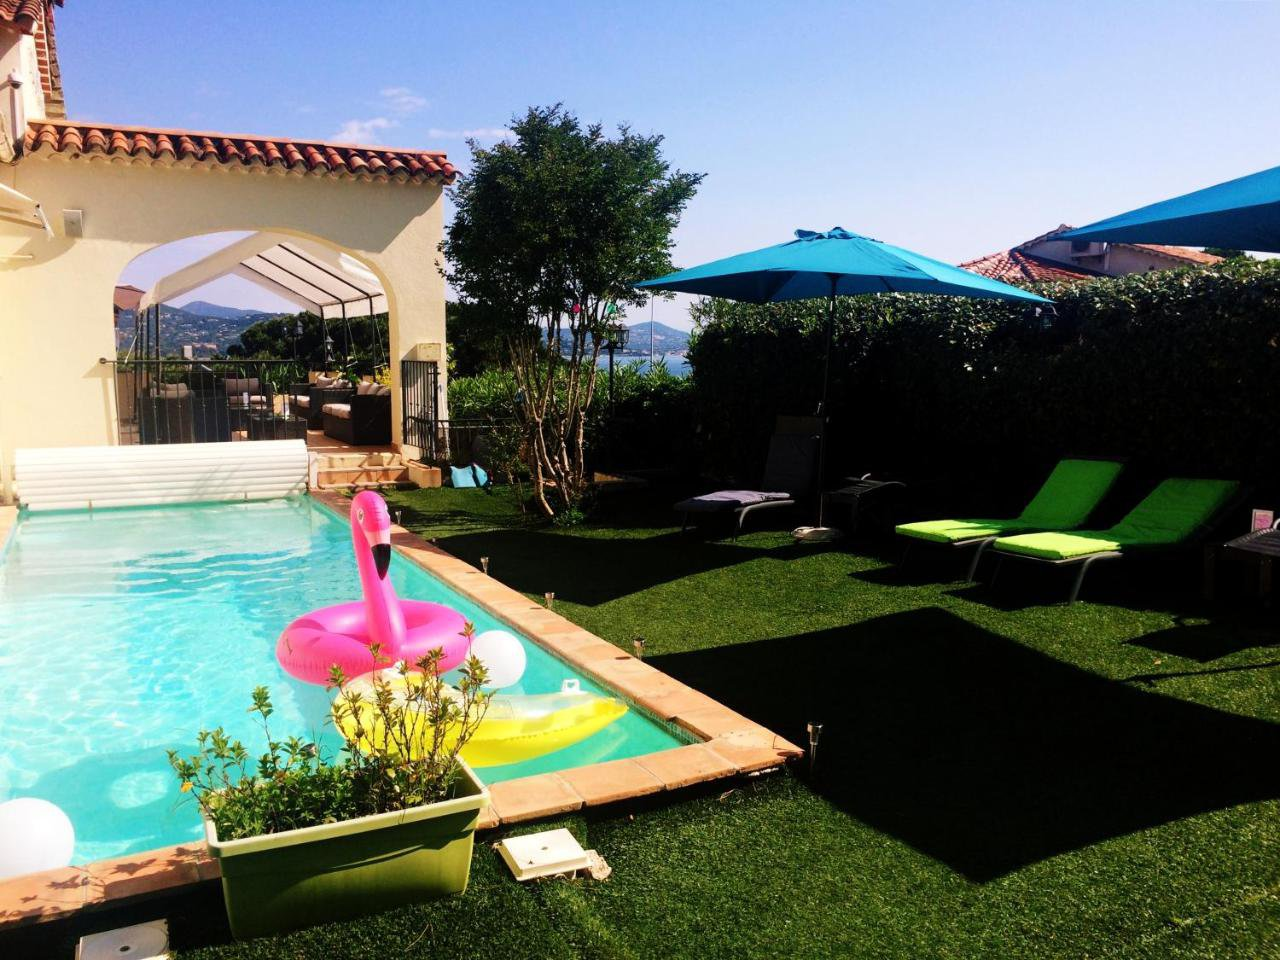 Sale of Hotel Residence - Saint-Tropez